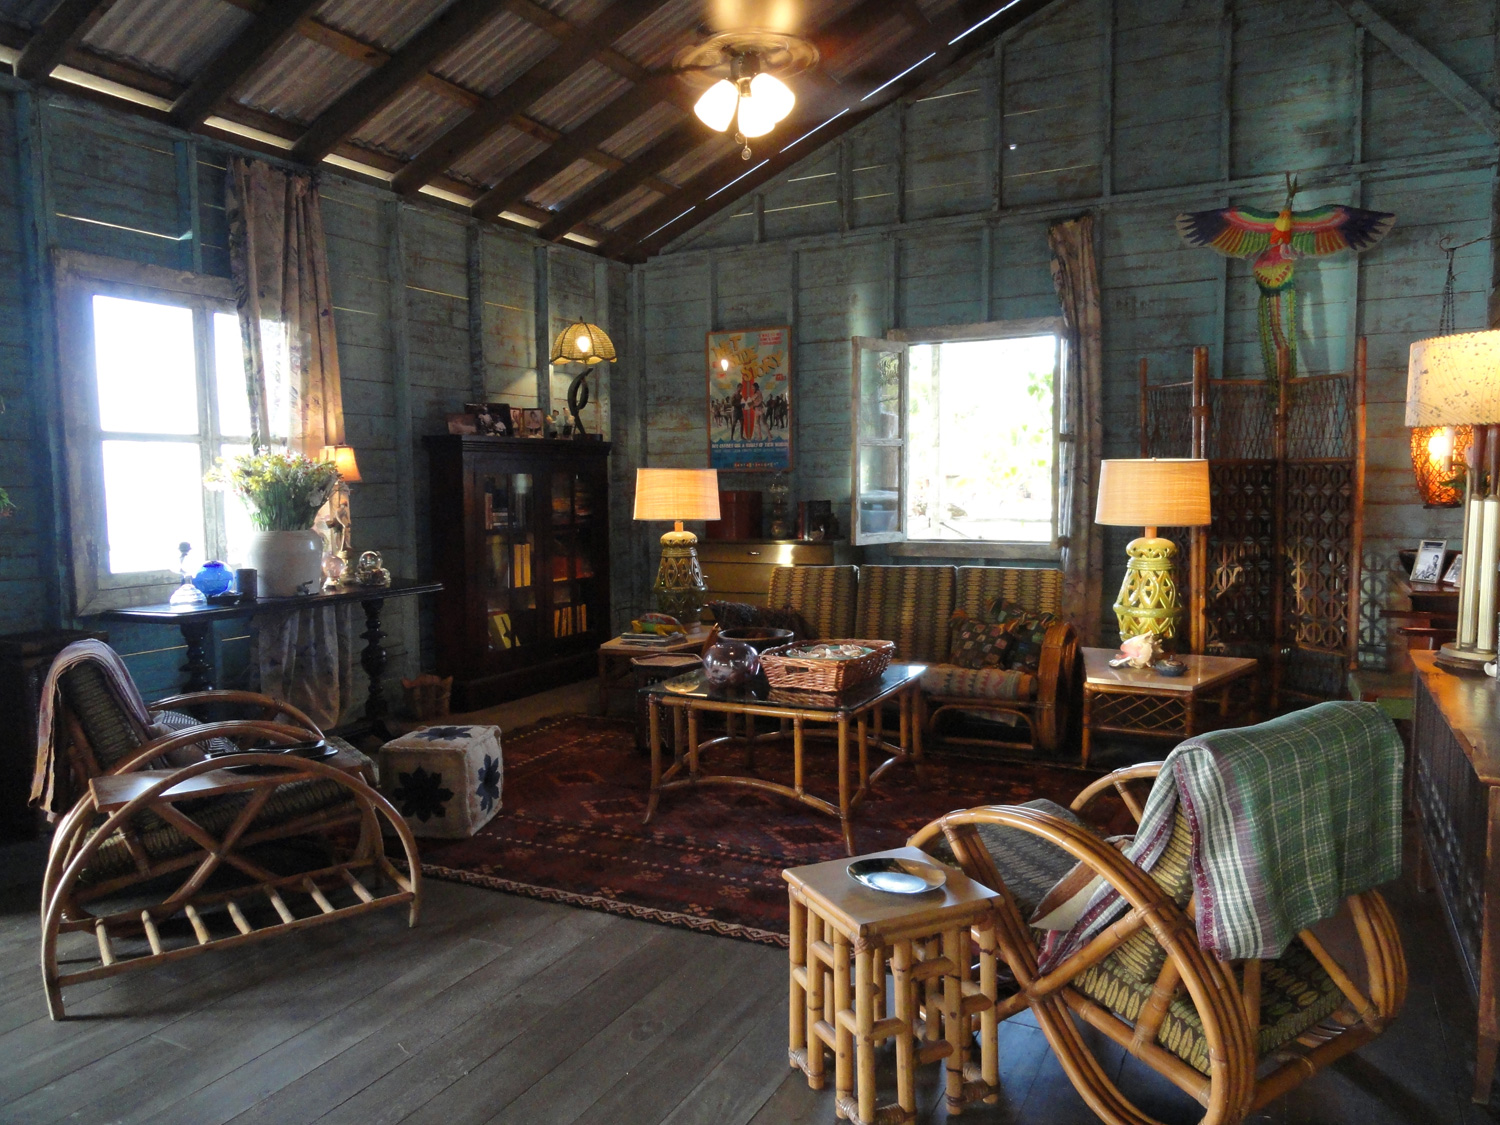 A reverse shot showing the casual living room in Big Poppa's surf shop/house.